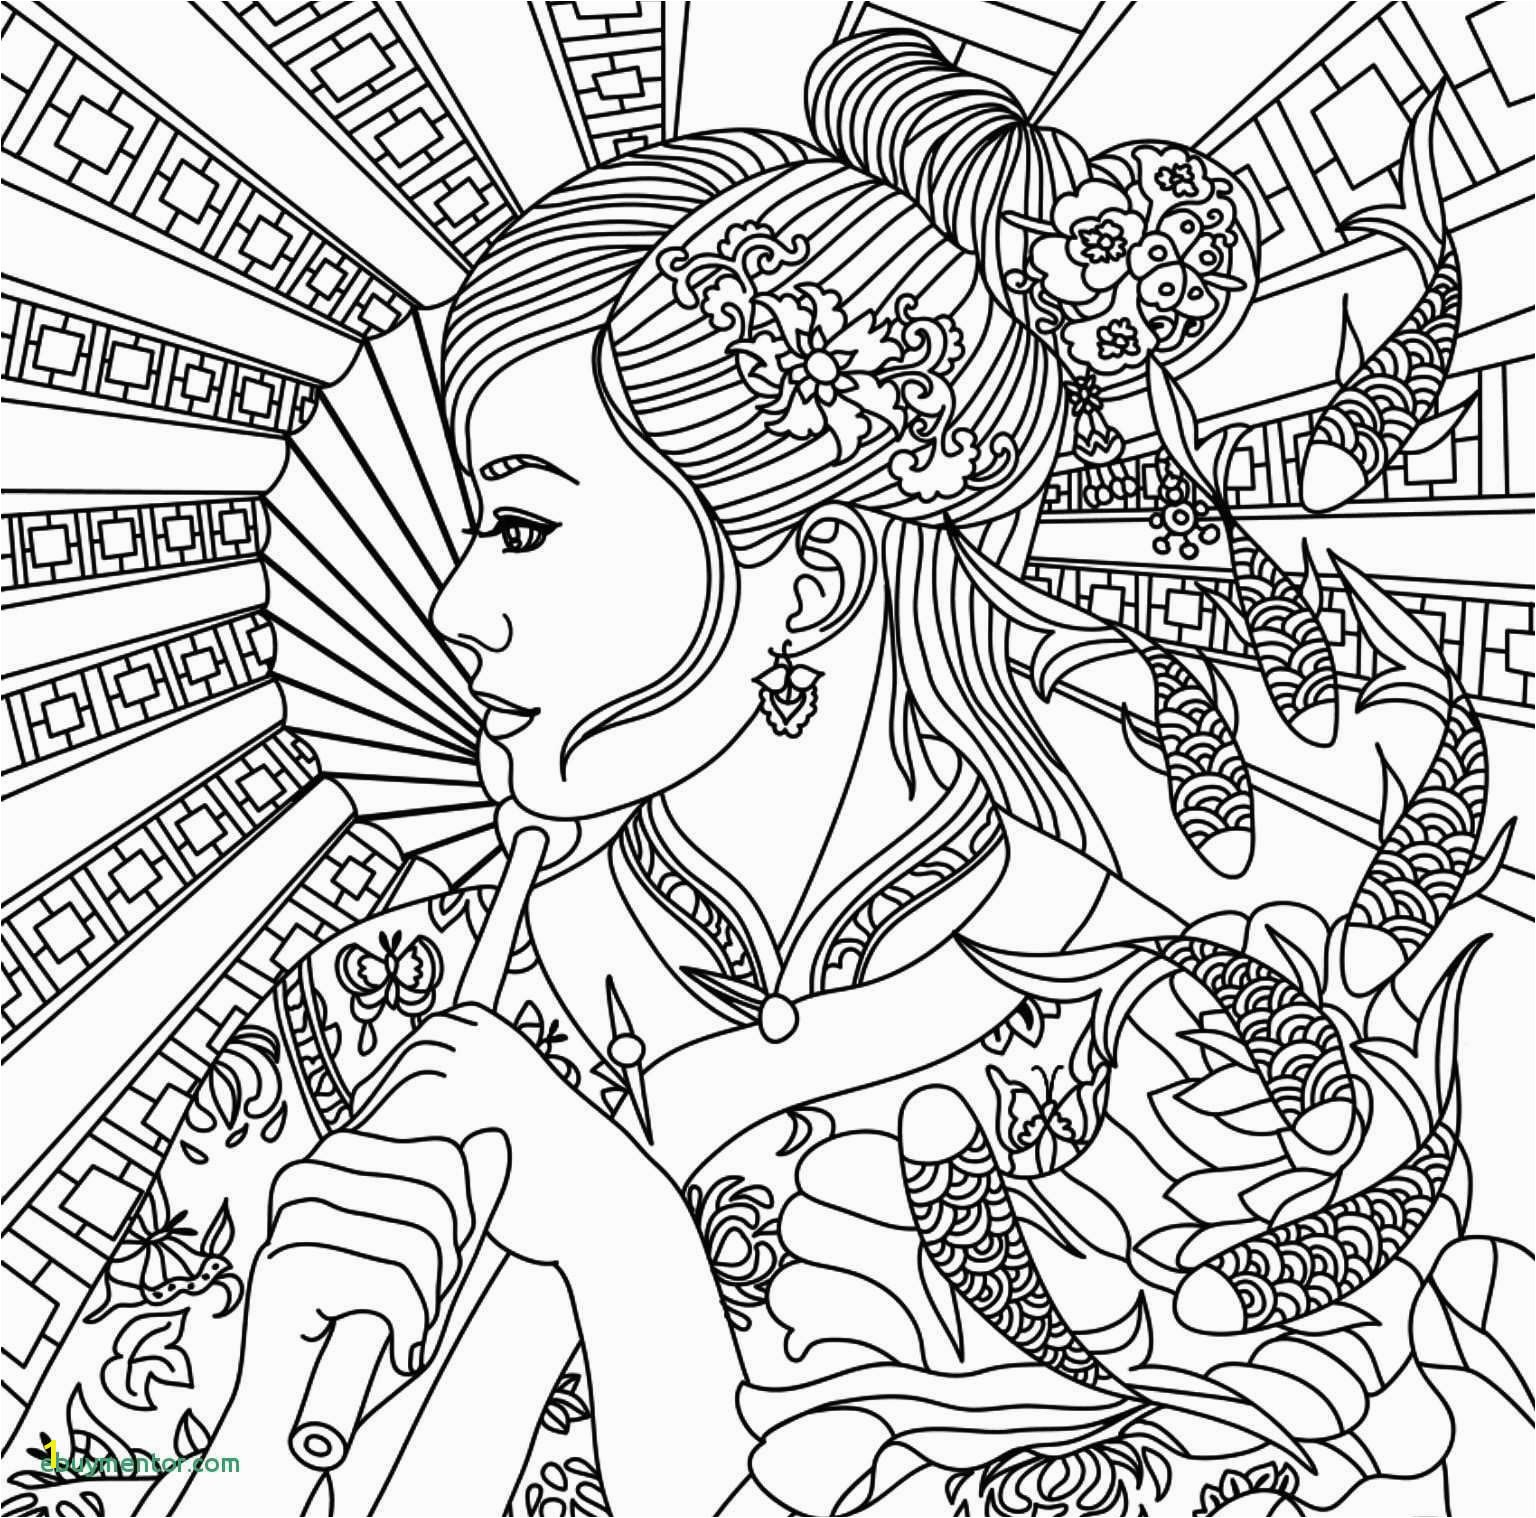 Printable Coloring Pages for Girls Frozen Free Printable Coloring Pages for Girls Printable Awesome Od Dog